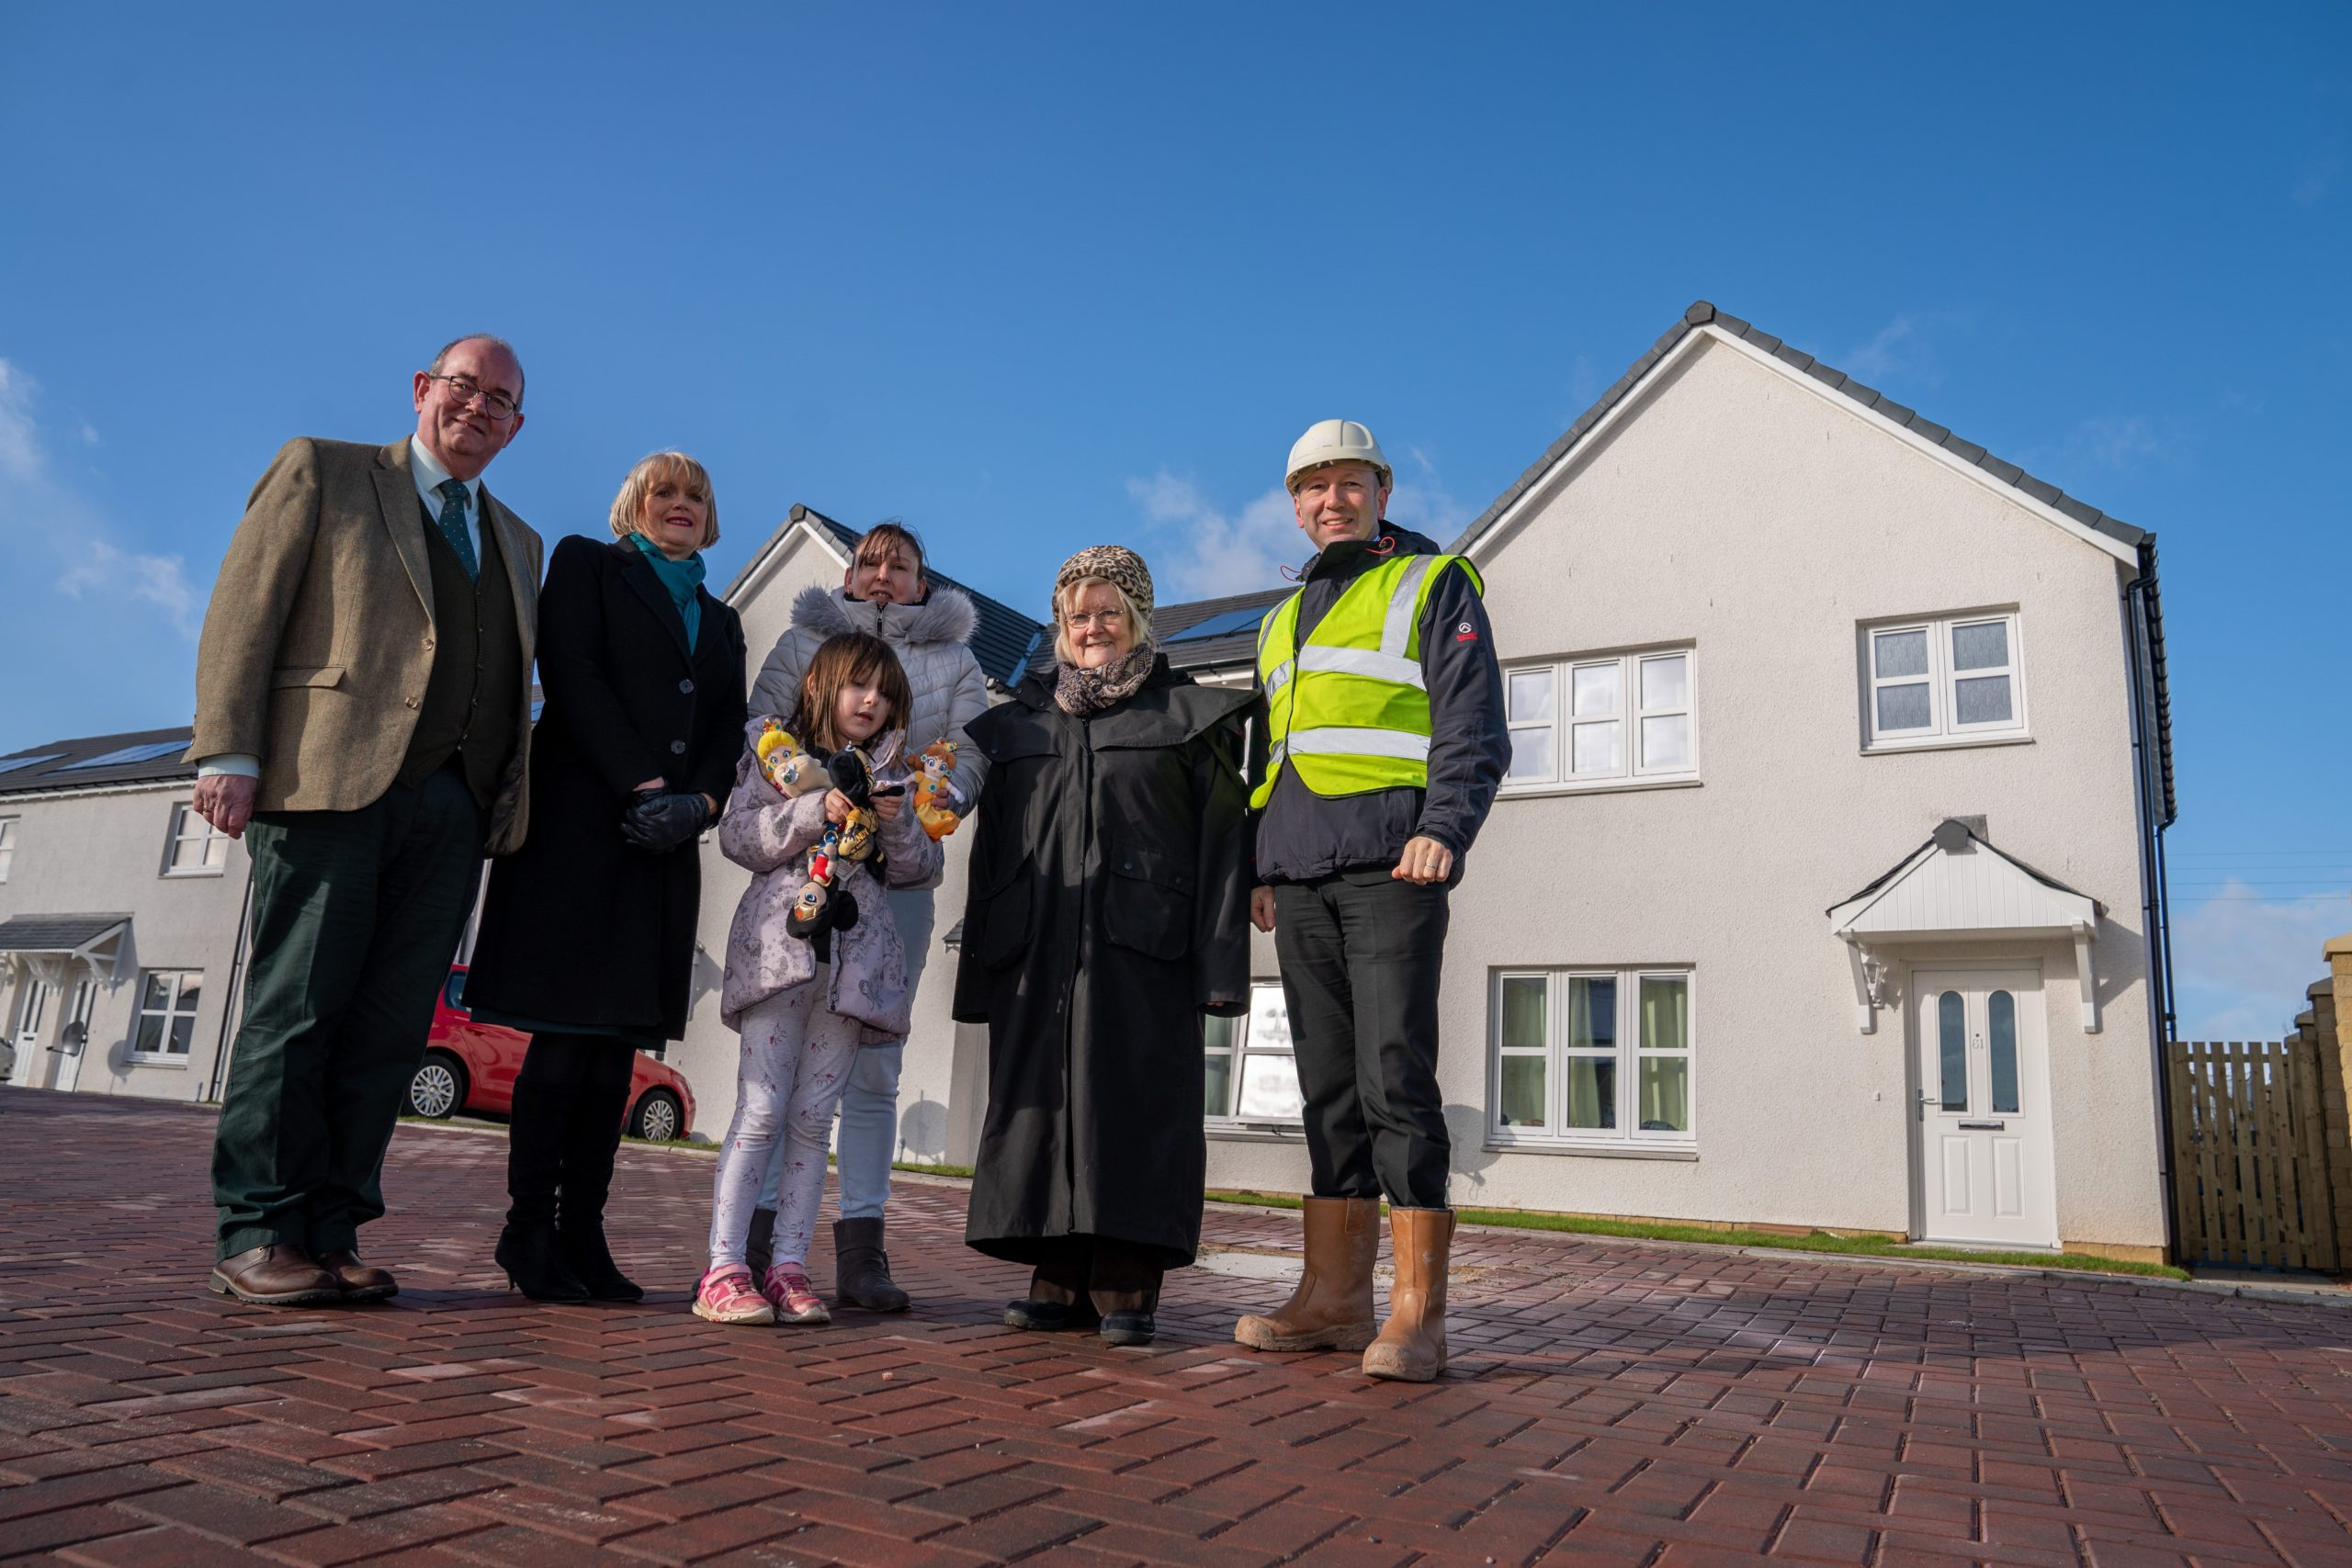 Councillor Bob Brawn, Alastair White (Managing Director Muir Homes), Local Tenant Veronica Robb and her 9 year old daughter Eve, Councillor Anne Jarvis and Barbara Renton. Picture: Kenny Smith.